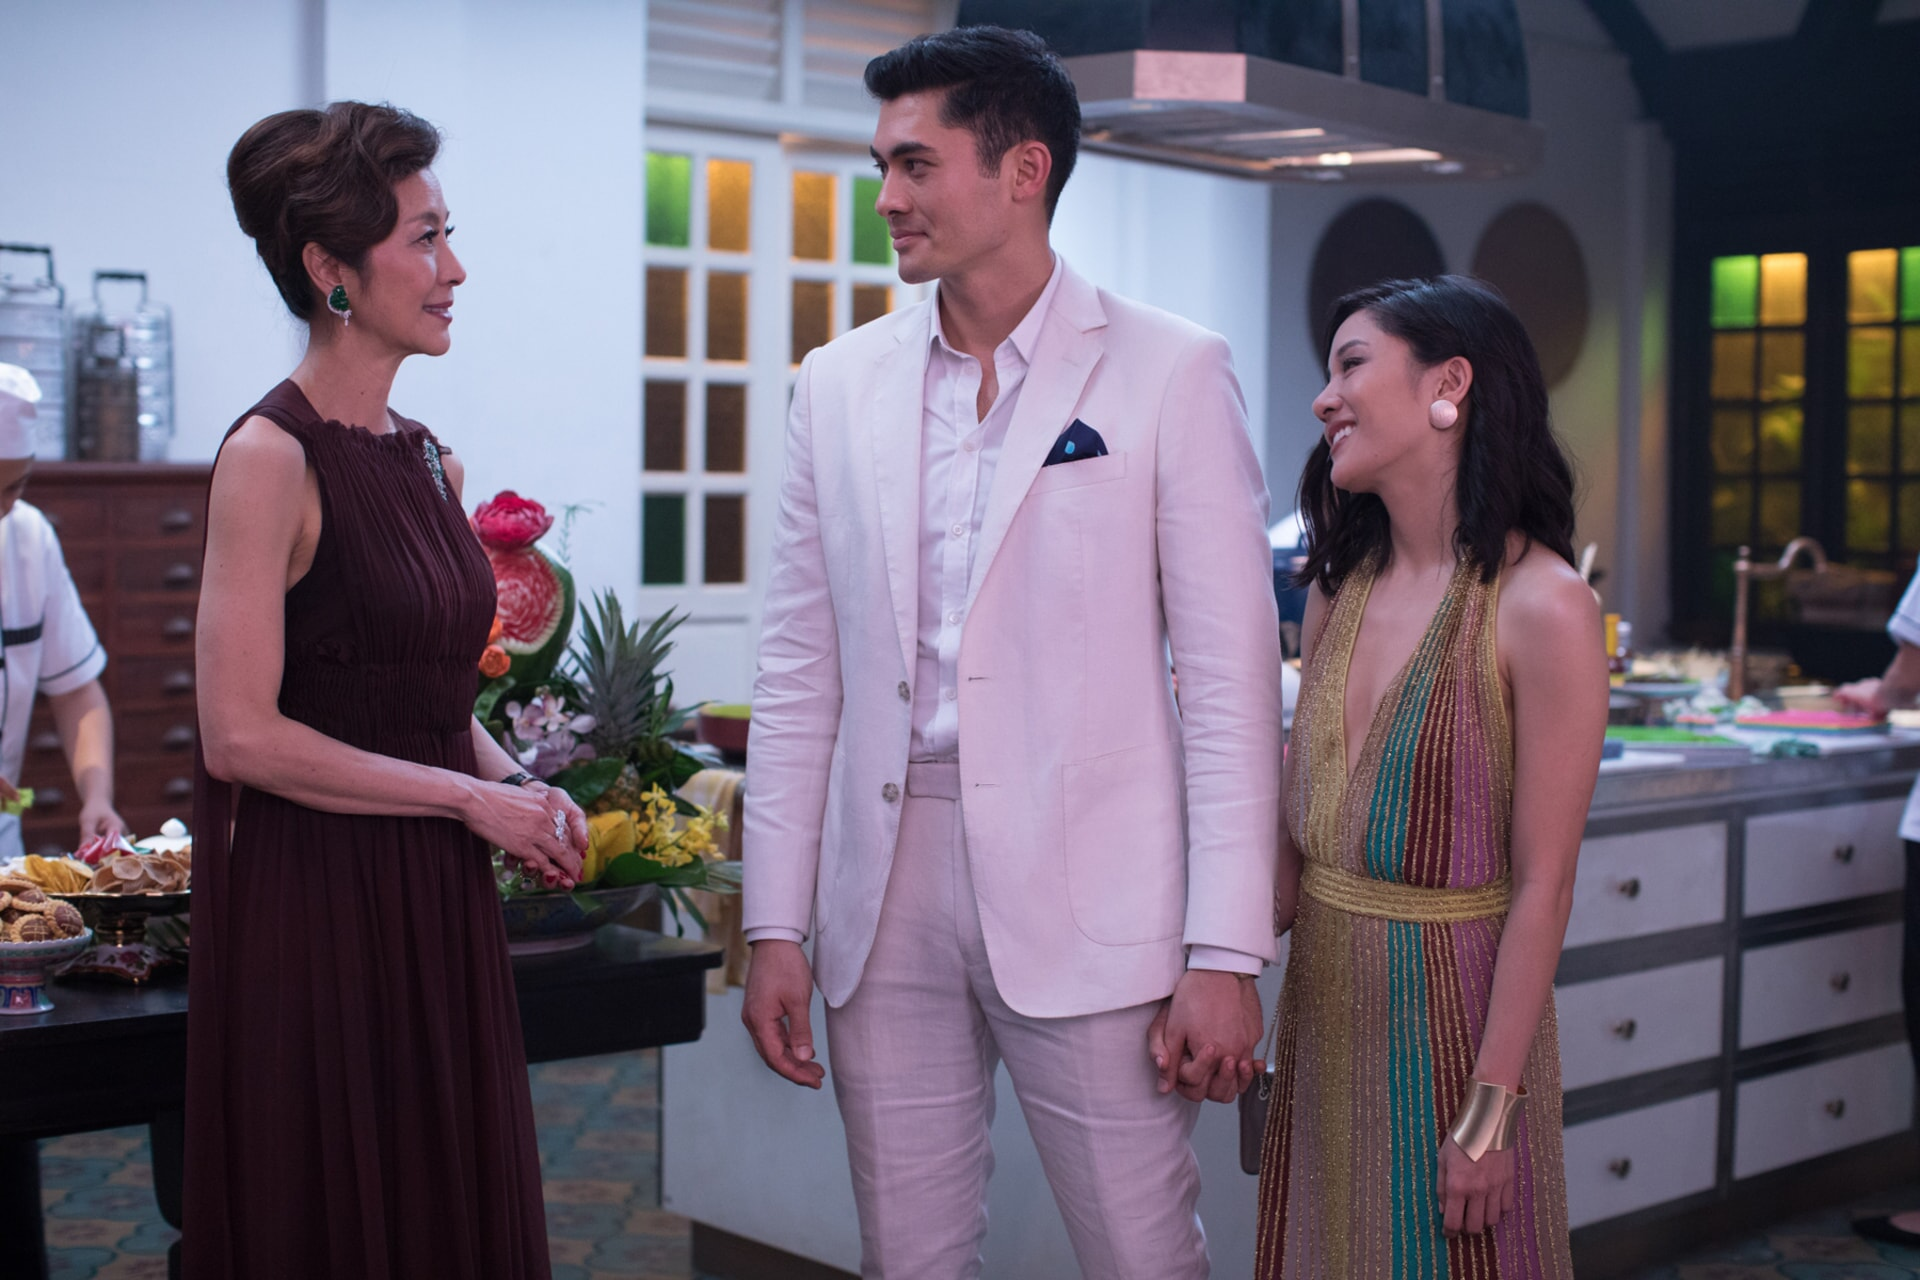 """(L-R) MICHELLE YEOH as Eleanor, HENRY GOLDING as Nick and CONSTANCE WU as Rachel in Warner Bros. Pictures' and SK Global Entertainment's contemporary romantic comedy """"CRAZY RICH ASIANS,"""" a Warner Bros. Pictures release. Photo Credit: Sanja Bucko"""